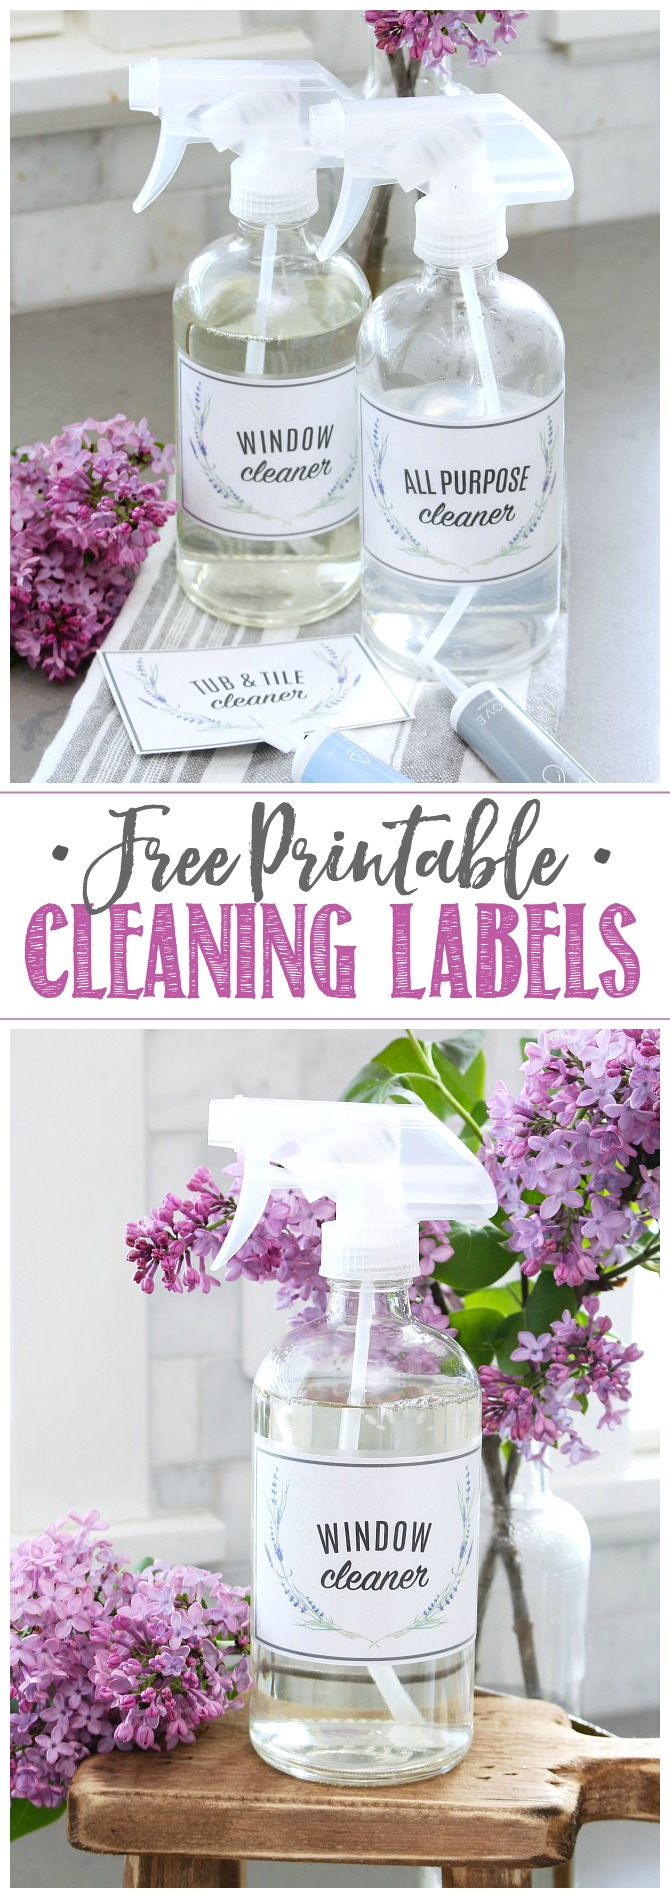 Free Printable Cleaning Labels - Clean and Scentsible